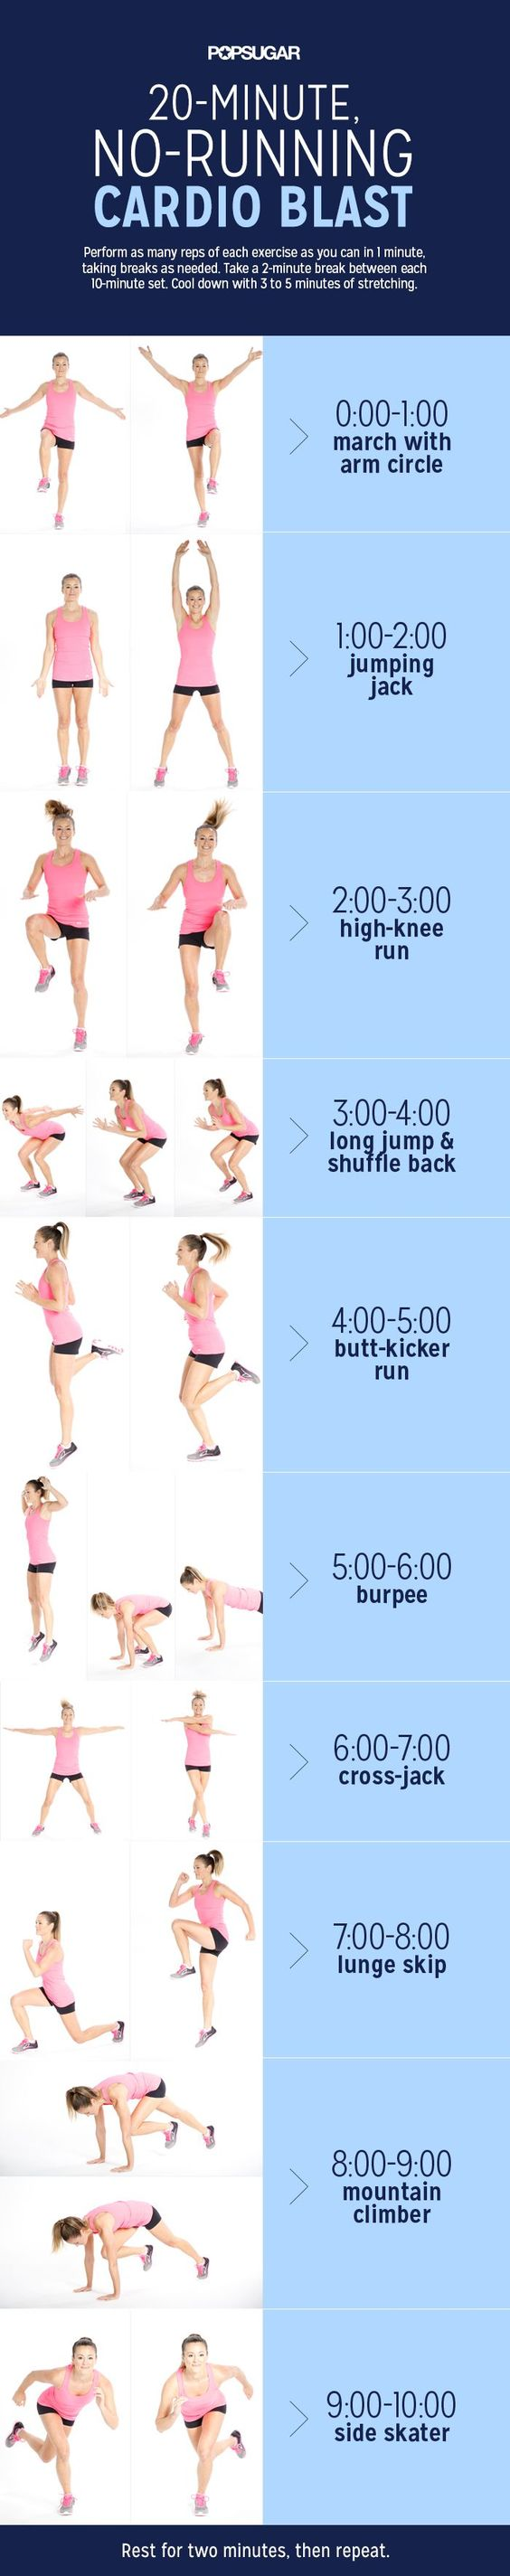 No matter where you are, get fit with this 20-minute, no equipment workout